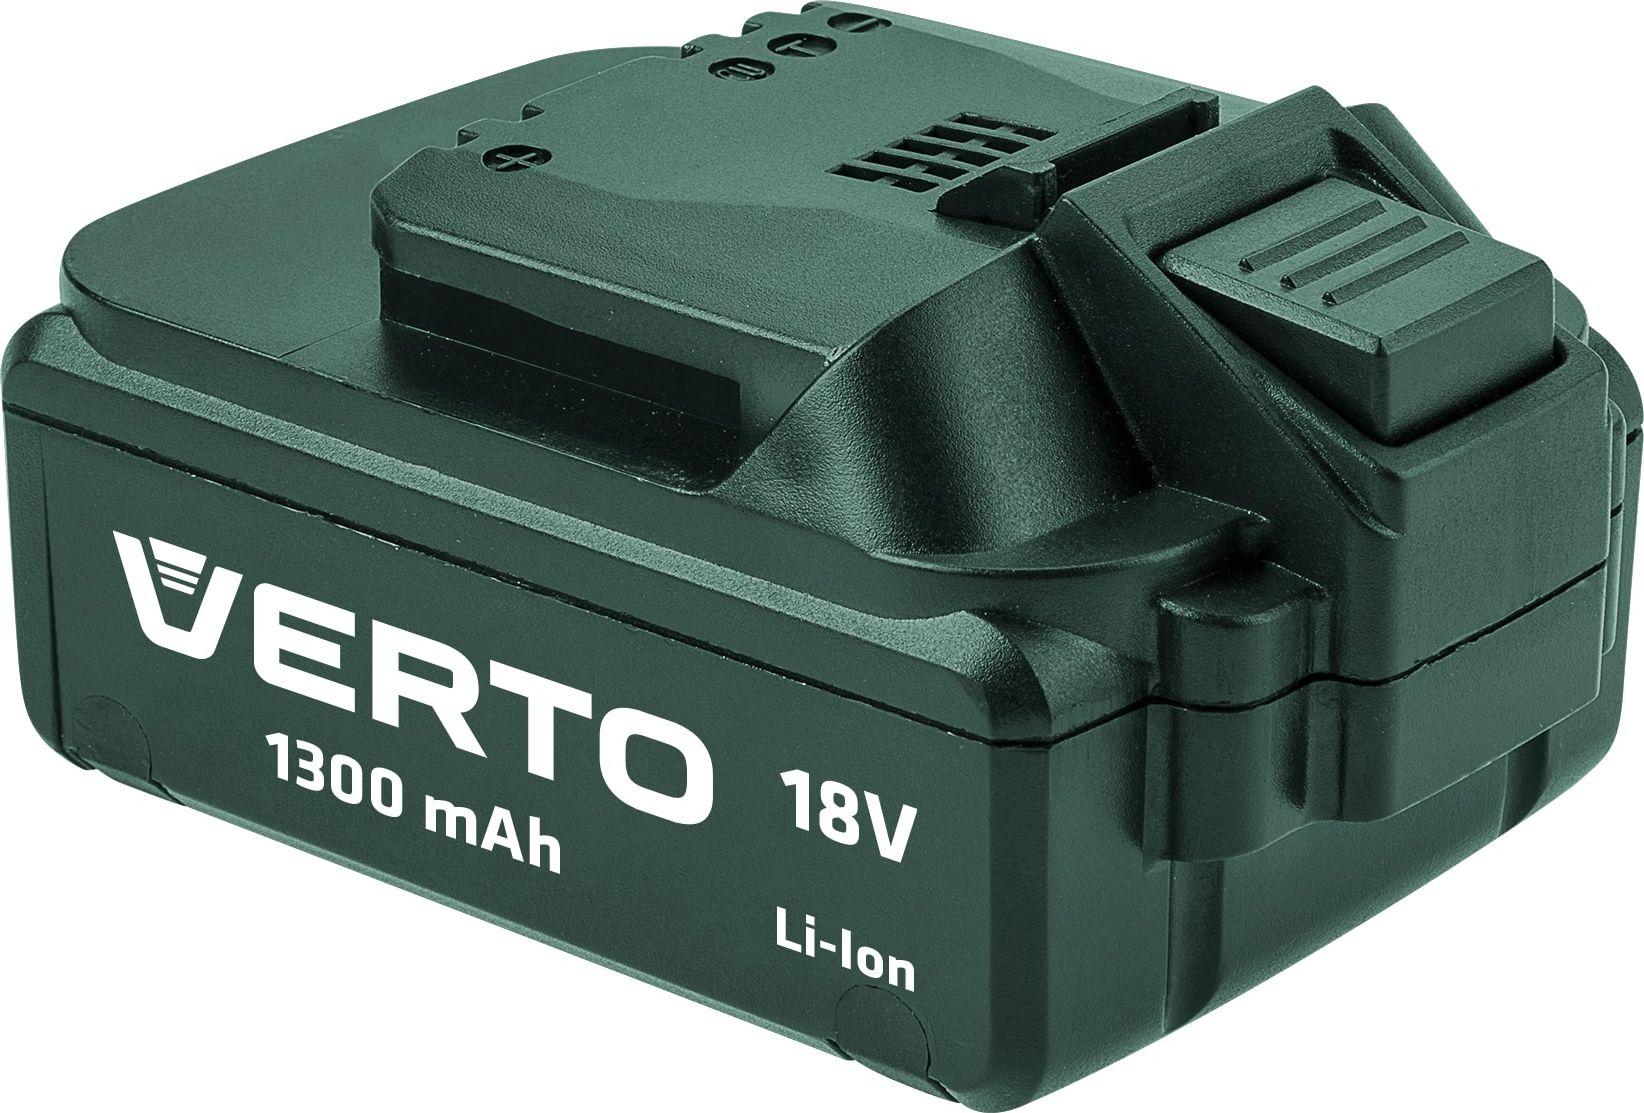 VERTO Akumulator 18V Li-Ion, 1.3Ah Green Power - K74735